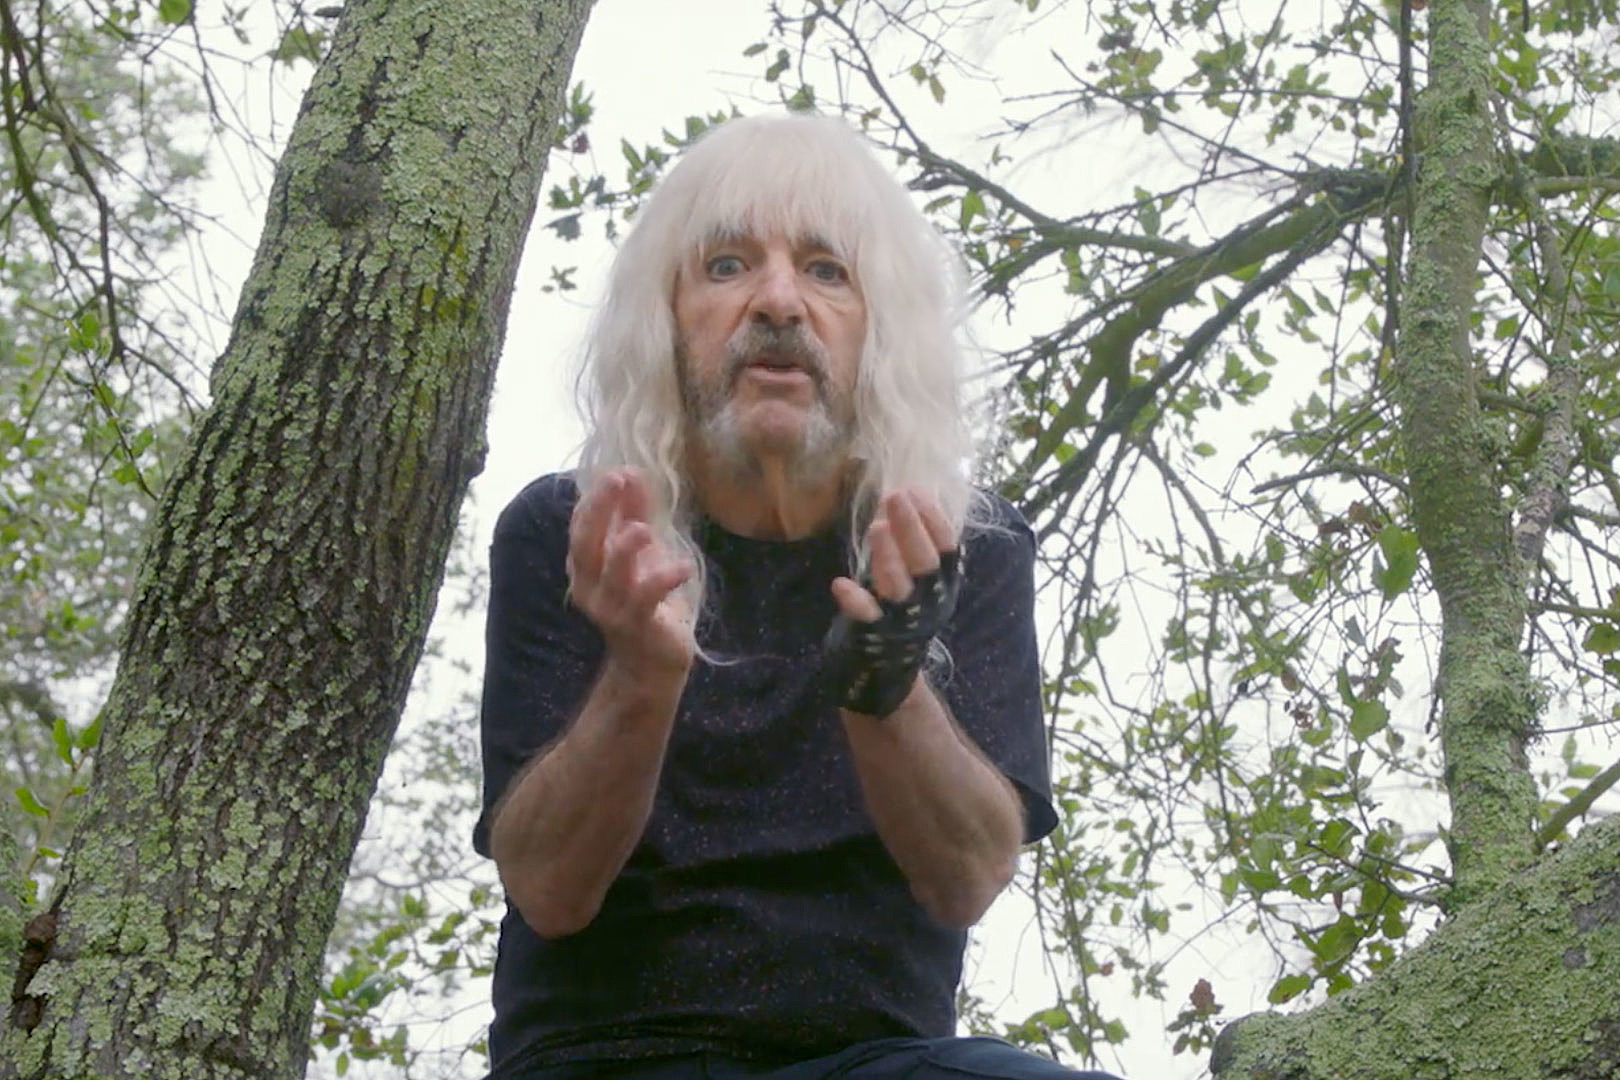 Spinal Tap's Derek Smalls Recruits All-Star Lineup for 'Smalls Change' Album